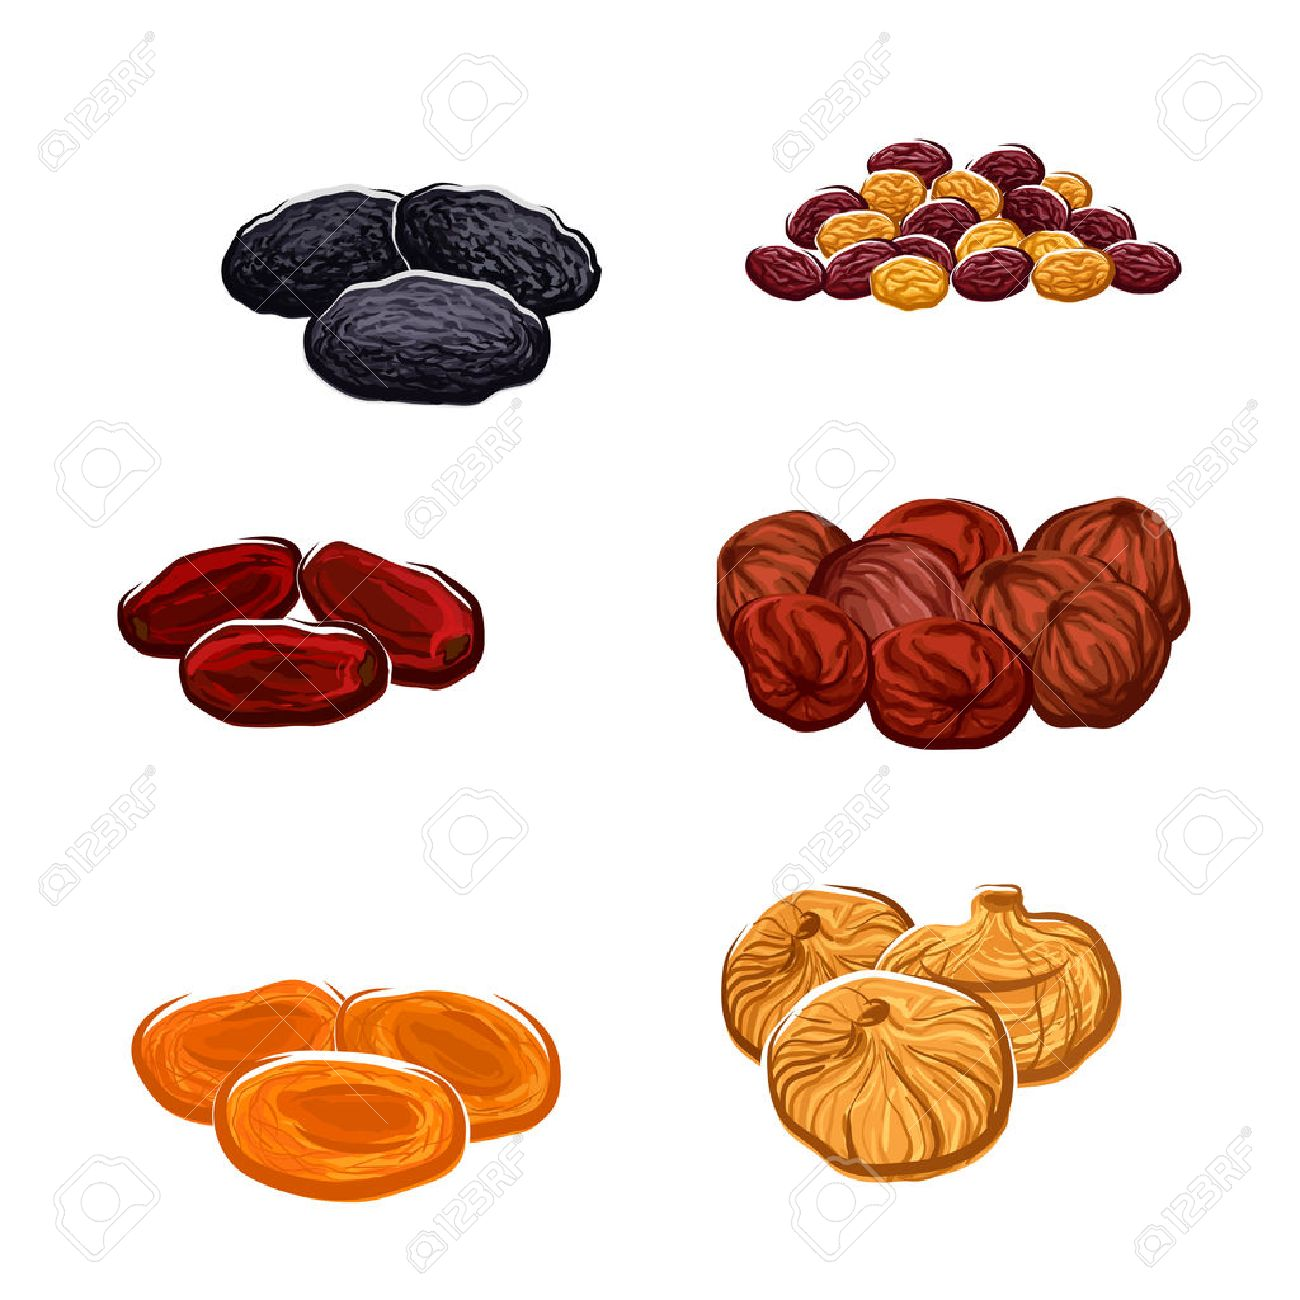 Vector icons of dried fruits. Isolated raisins of grape, dates and juicy exotic figs, apricots, plums and black prunes. Vegetarian or vegan raw food nutrition or sweets and dessert snacks or appetizers or culinary ingredients - 70977994